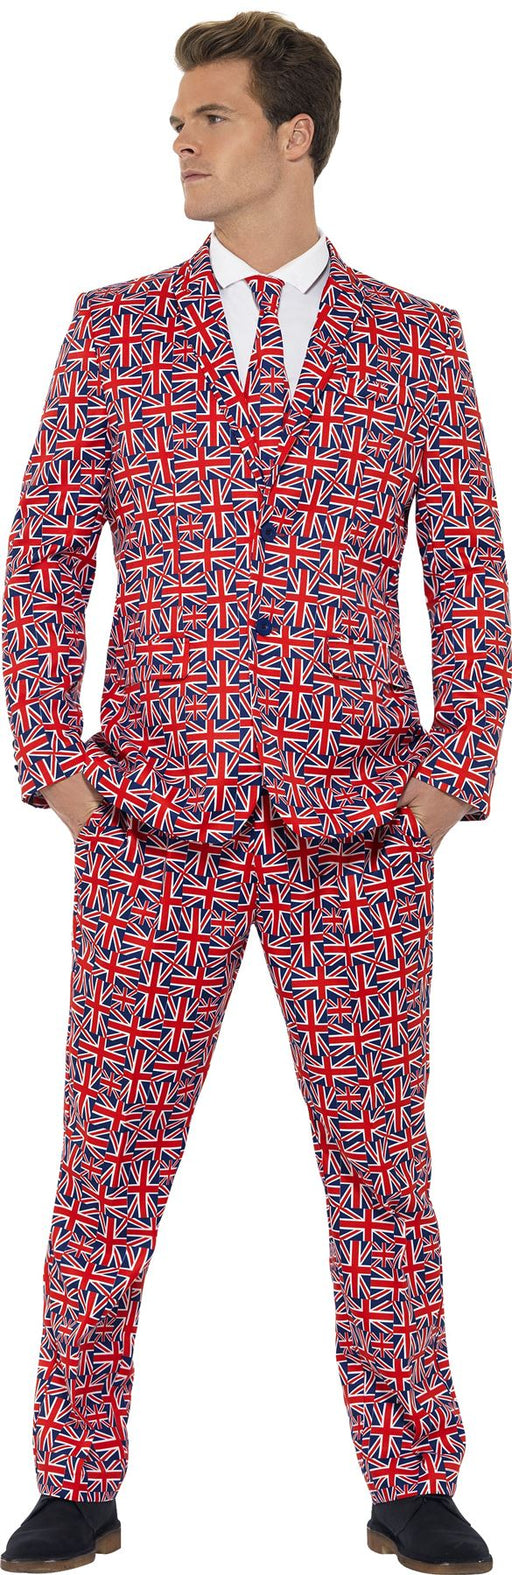 Stand Out Suit (Union Jack)